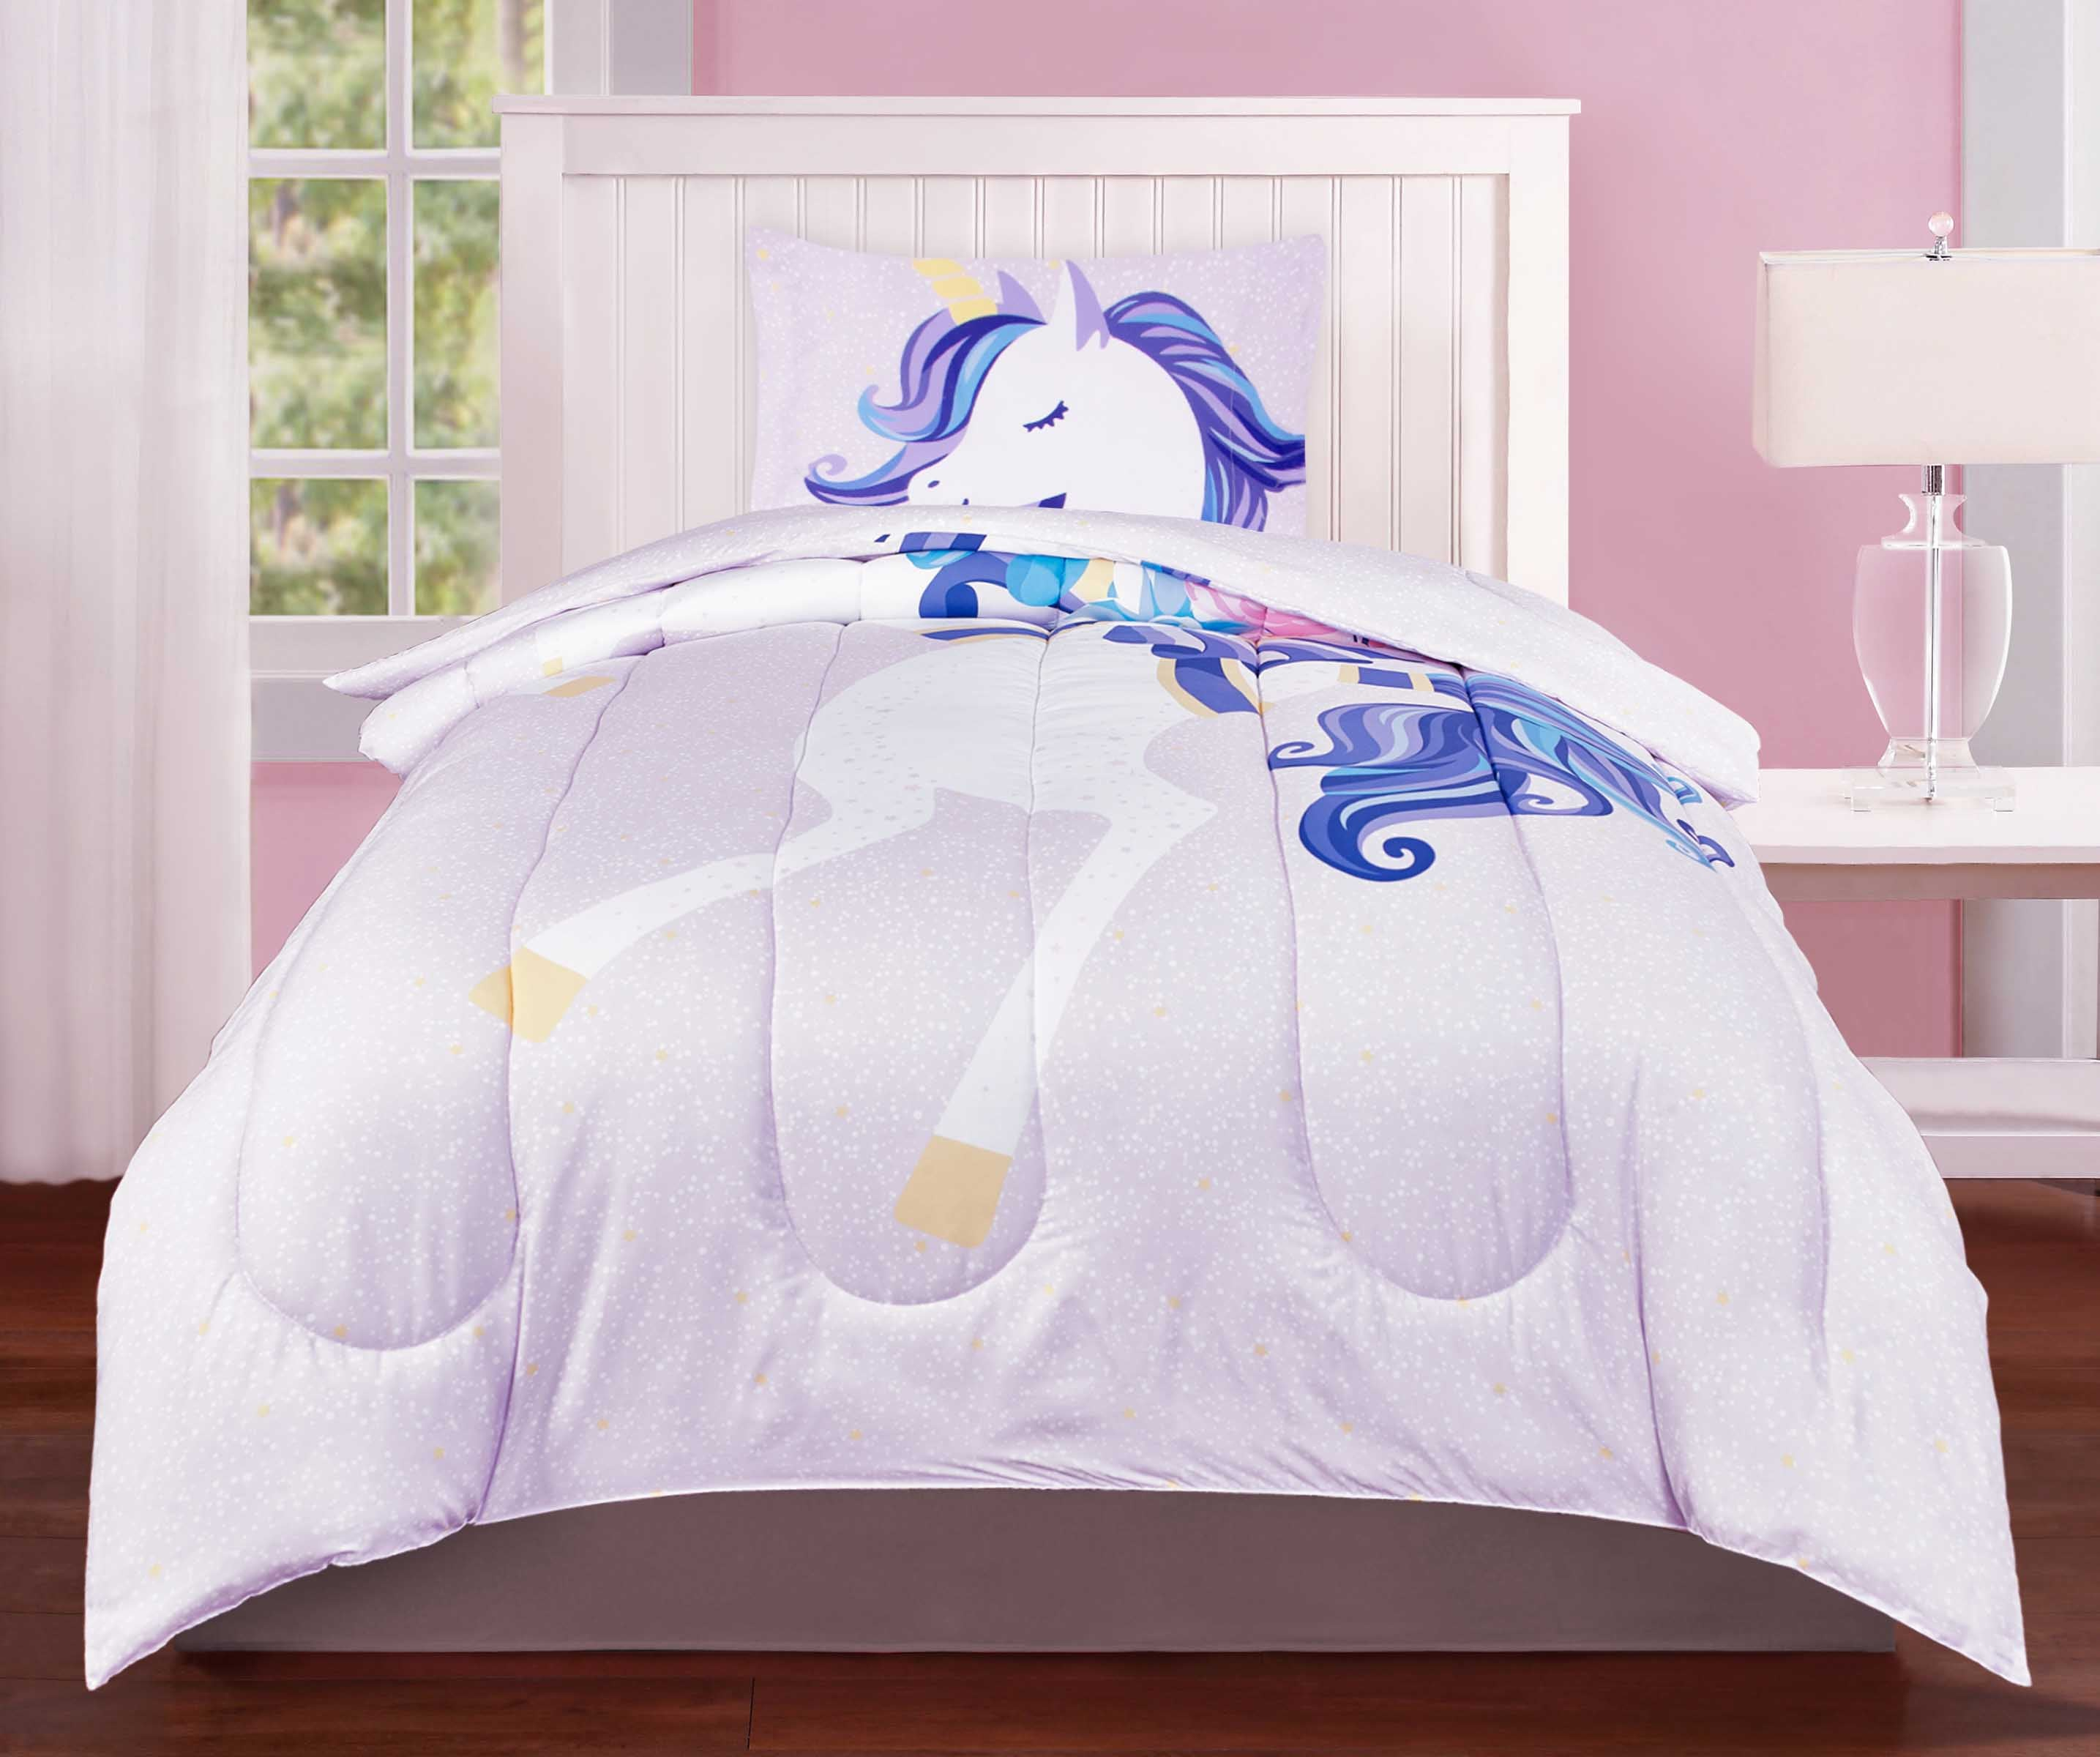 2 Piece Twin Character Bedding Set, Comforter & Pillowcase, Unicorn